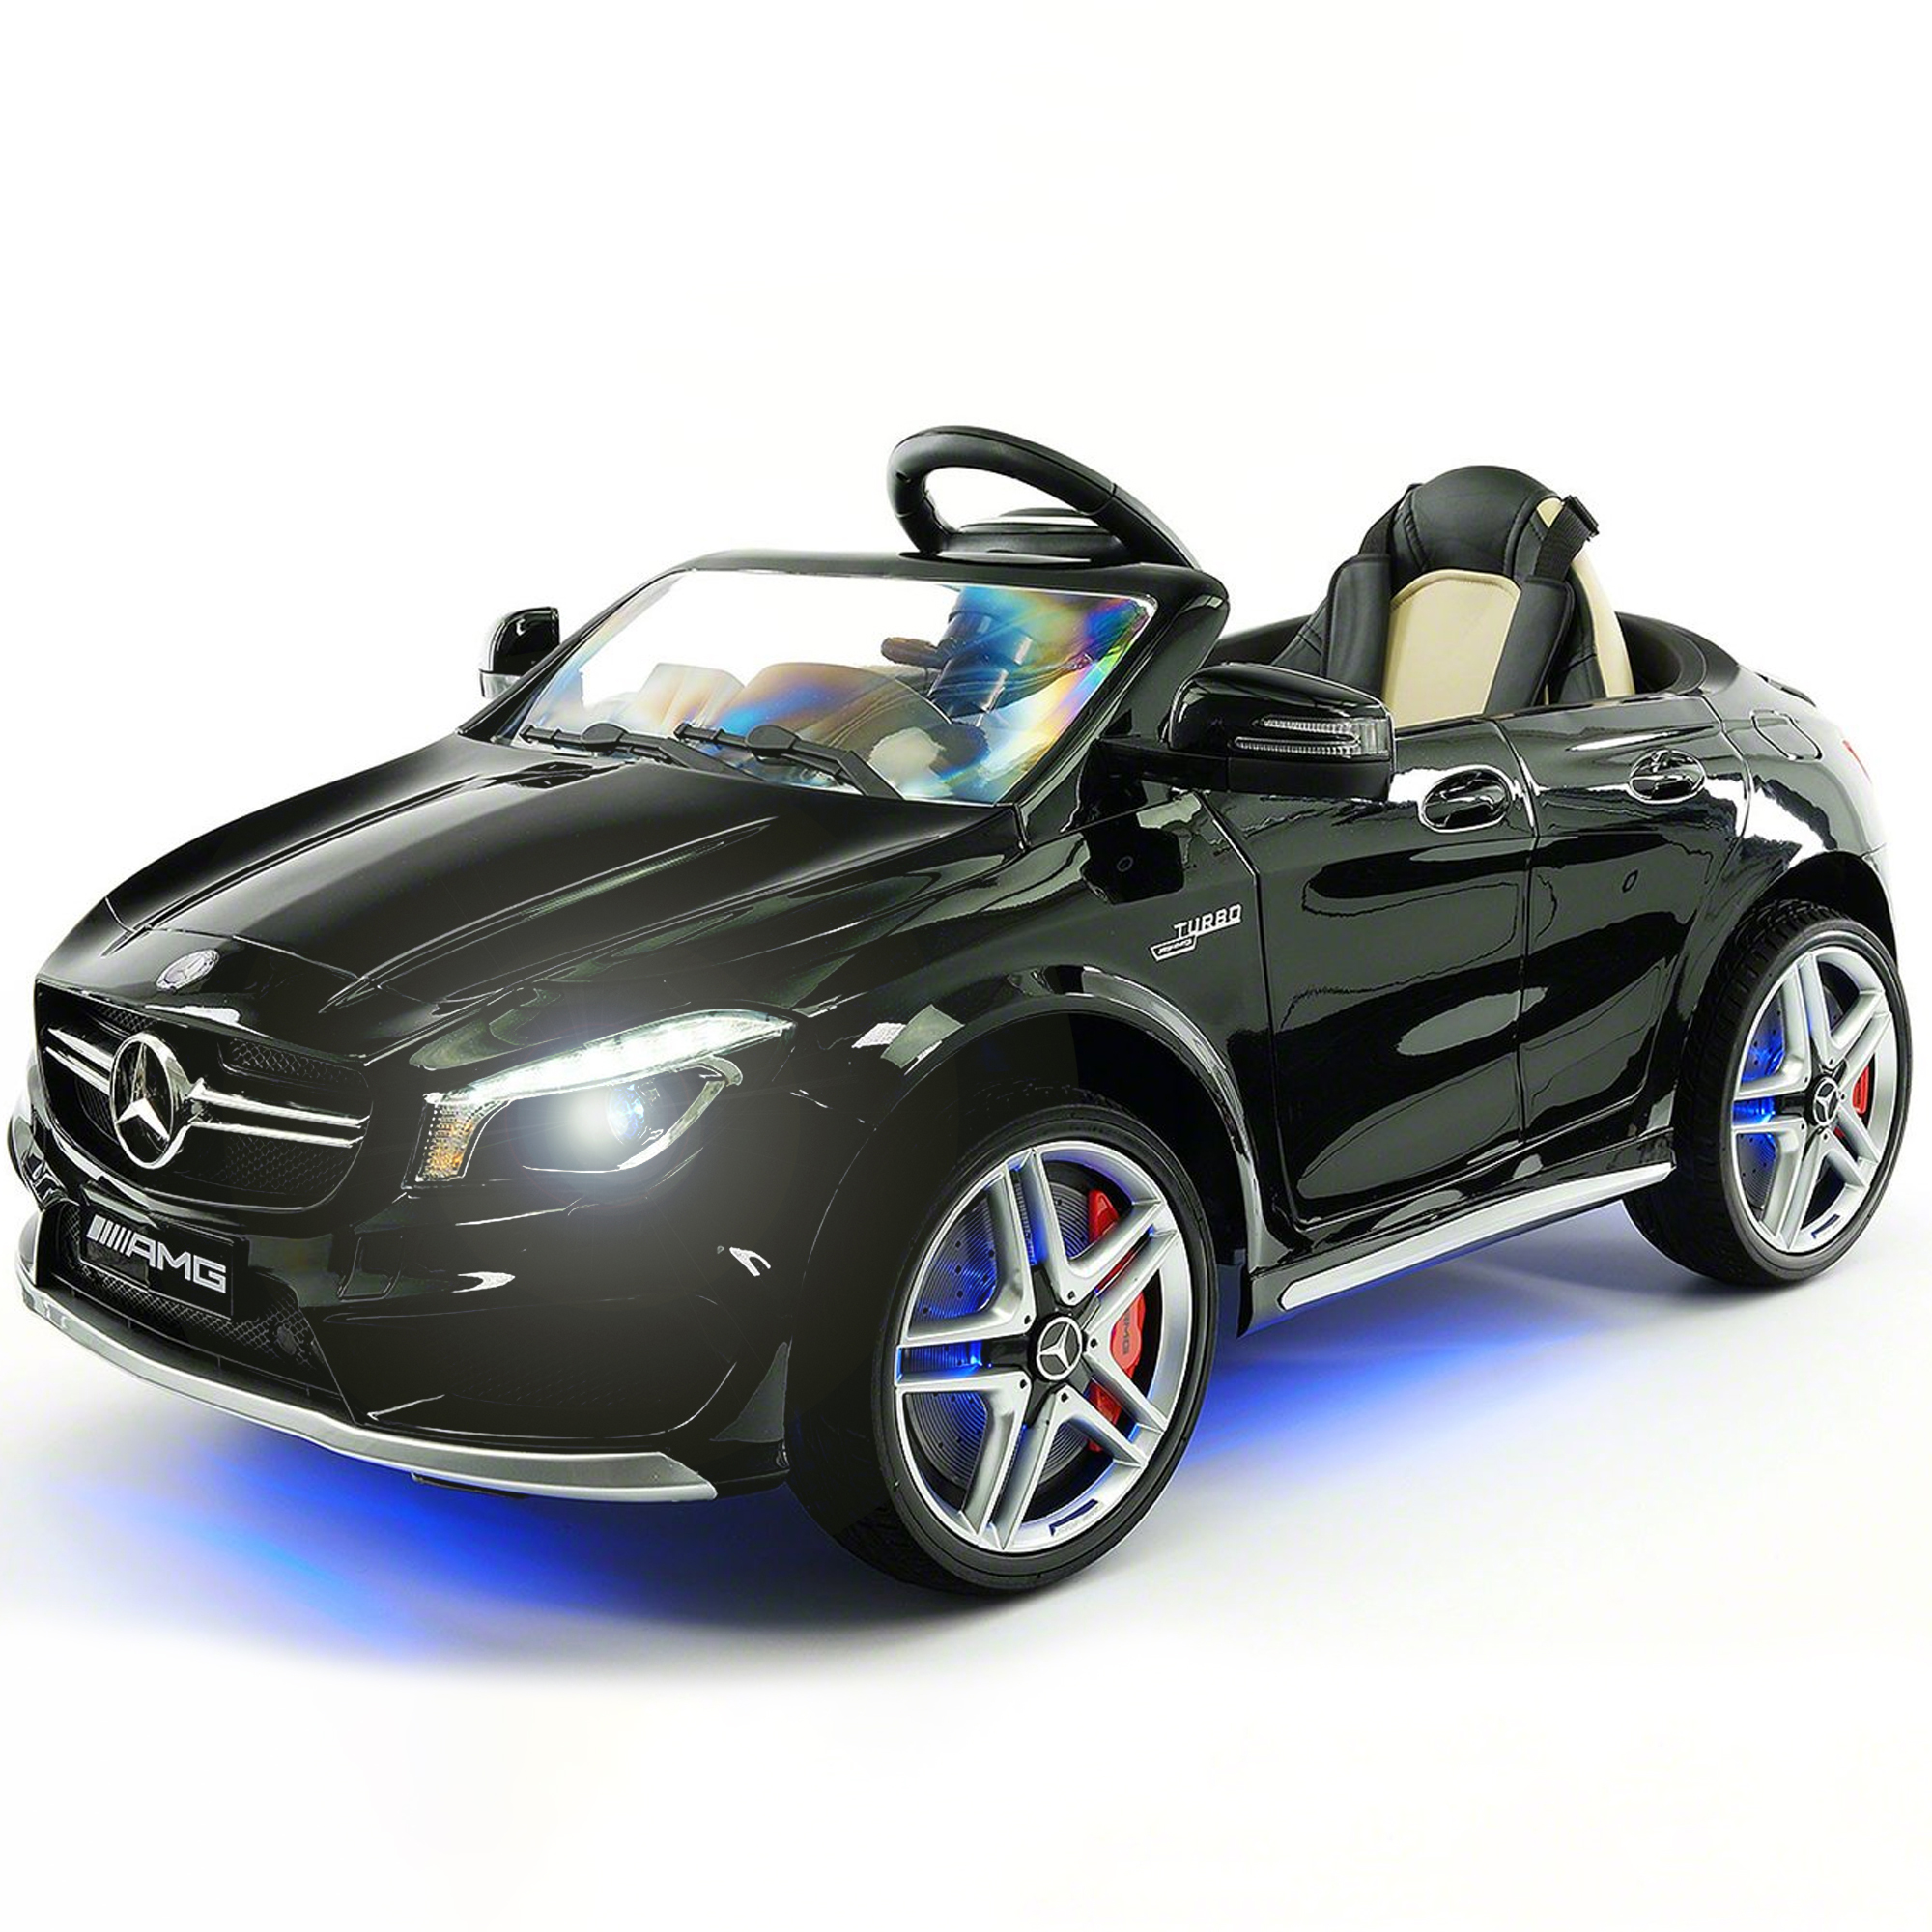 2019 Licensed Mercedes AMG 12V Battery Ride on Toy Car w  Dining Table, LED Lights, Openable Doors by Moderno Kids